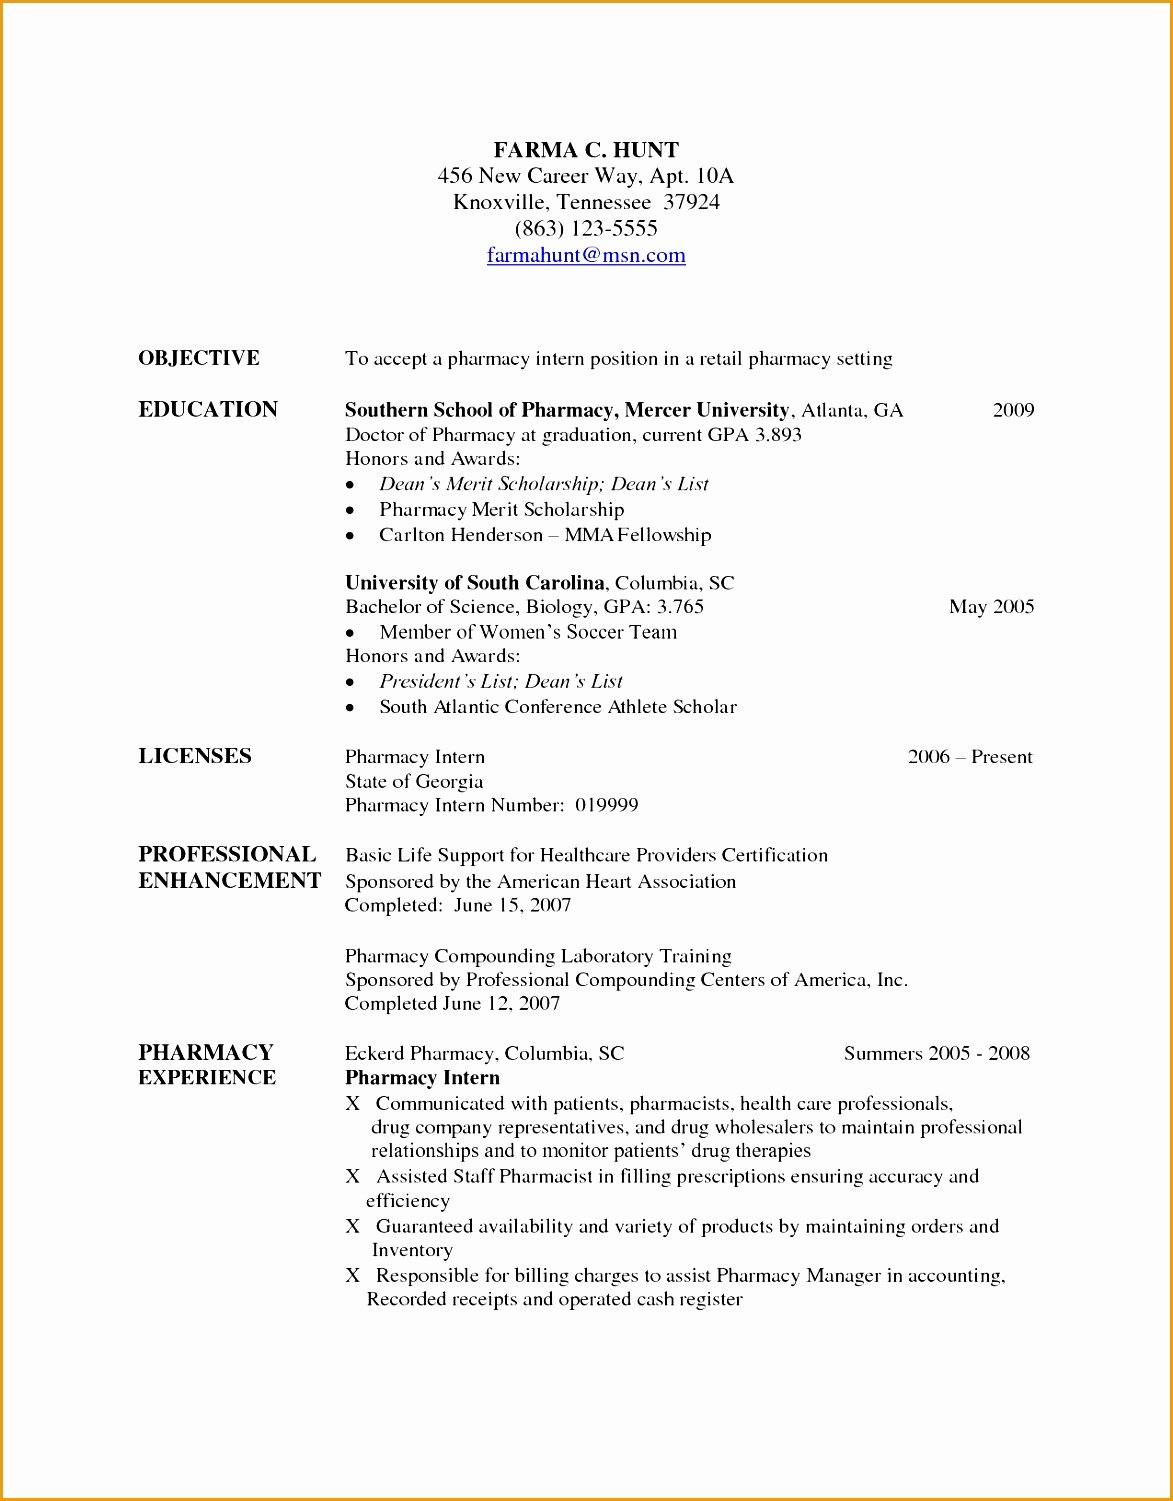 Pharmacy Curriculum Vitae Template Best Of 7 Pharmacist Curriculum Vitae Templates Free Samples Examples & format Resume Curruculum